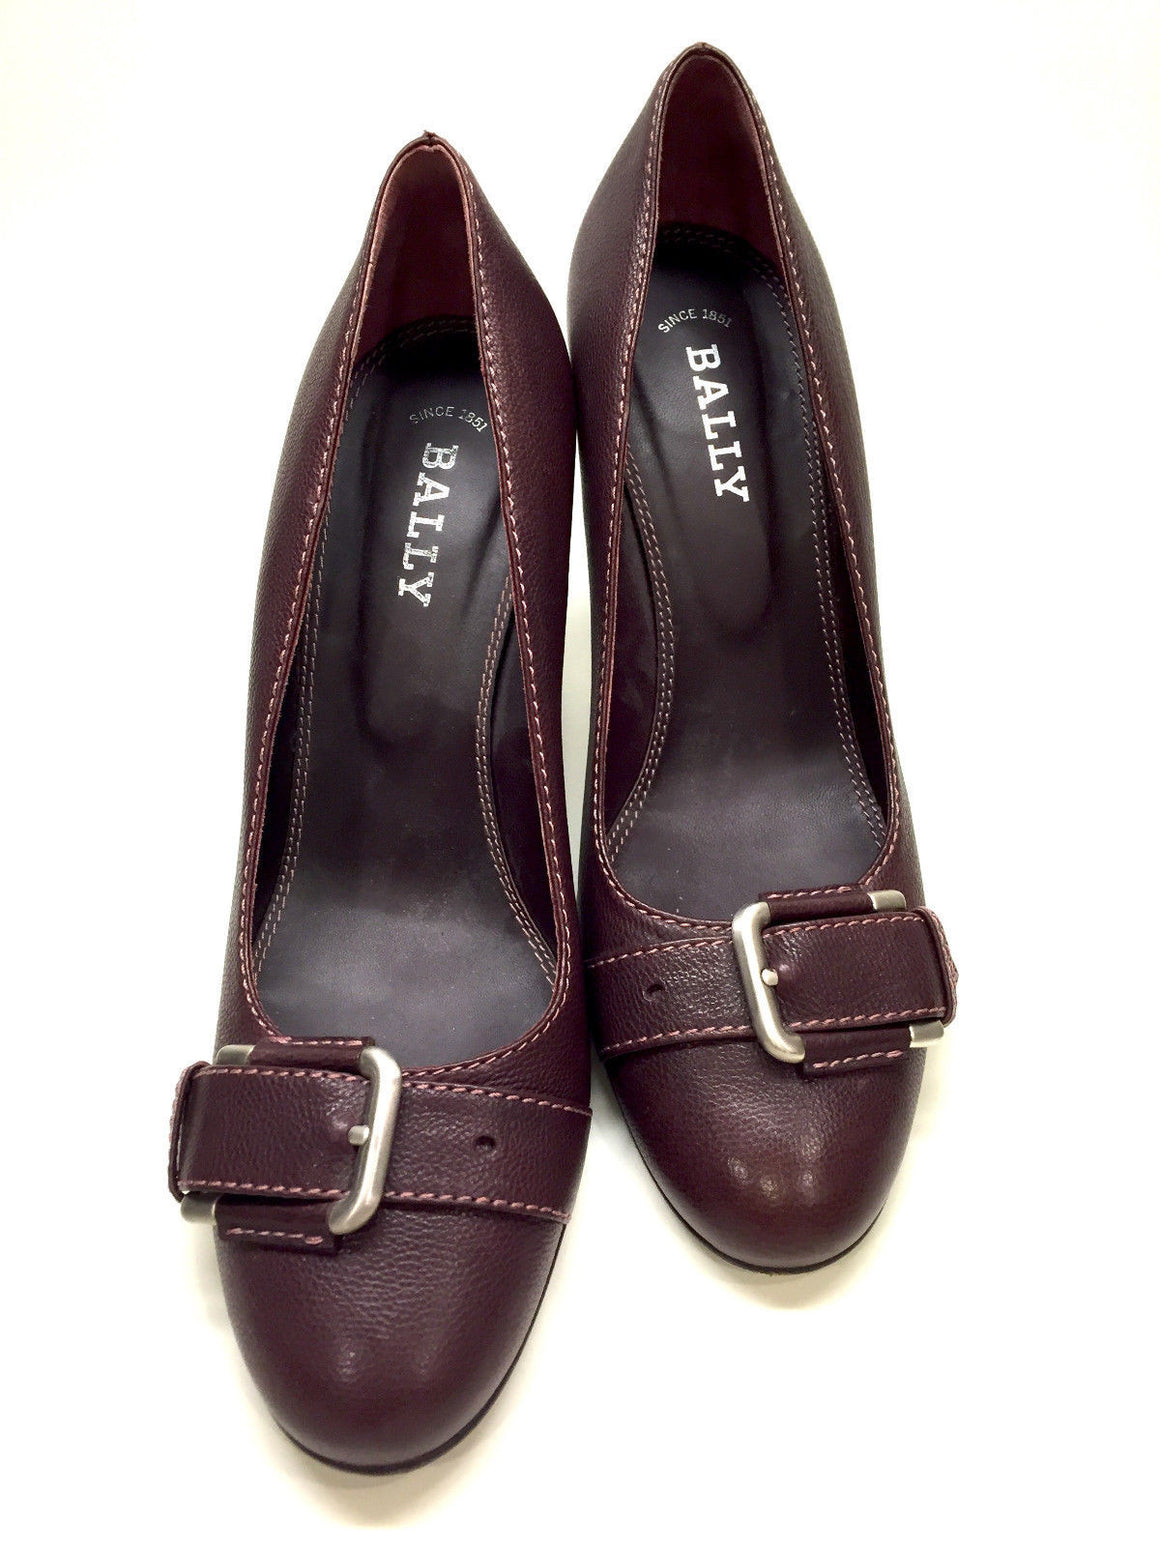 bisbiz.com BALLY  Burgundy Leather Silvertone Buckle  Heel Pumps Shoes  Size: EU 39 / US 8.5 - Bis Luxury Resale